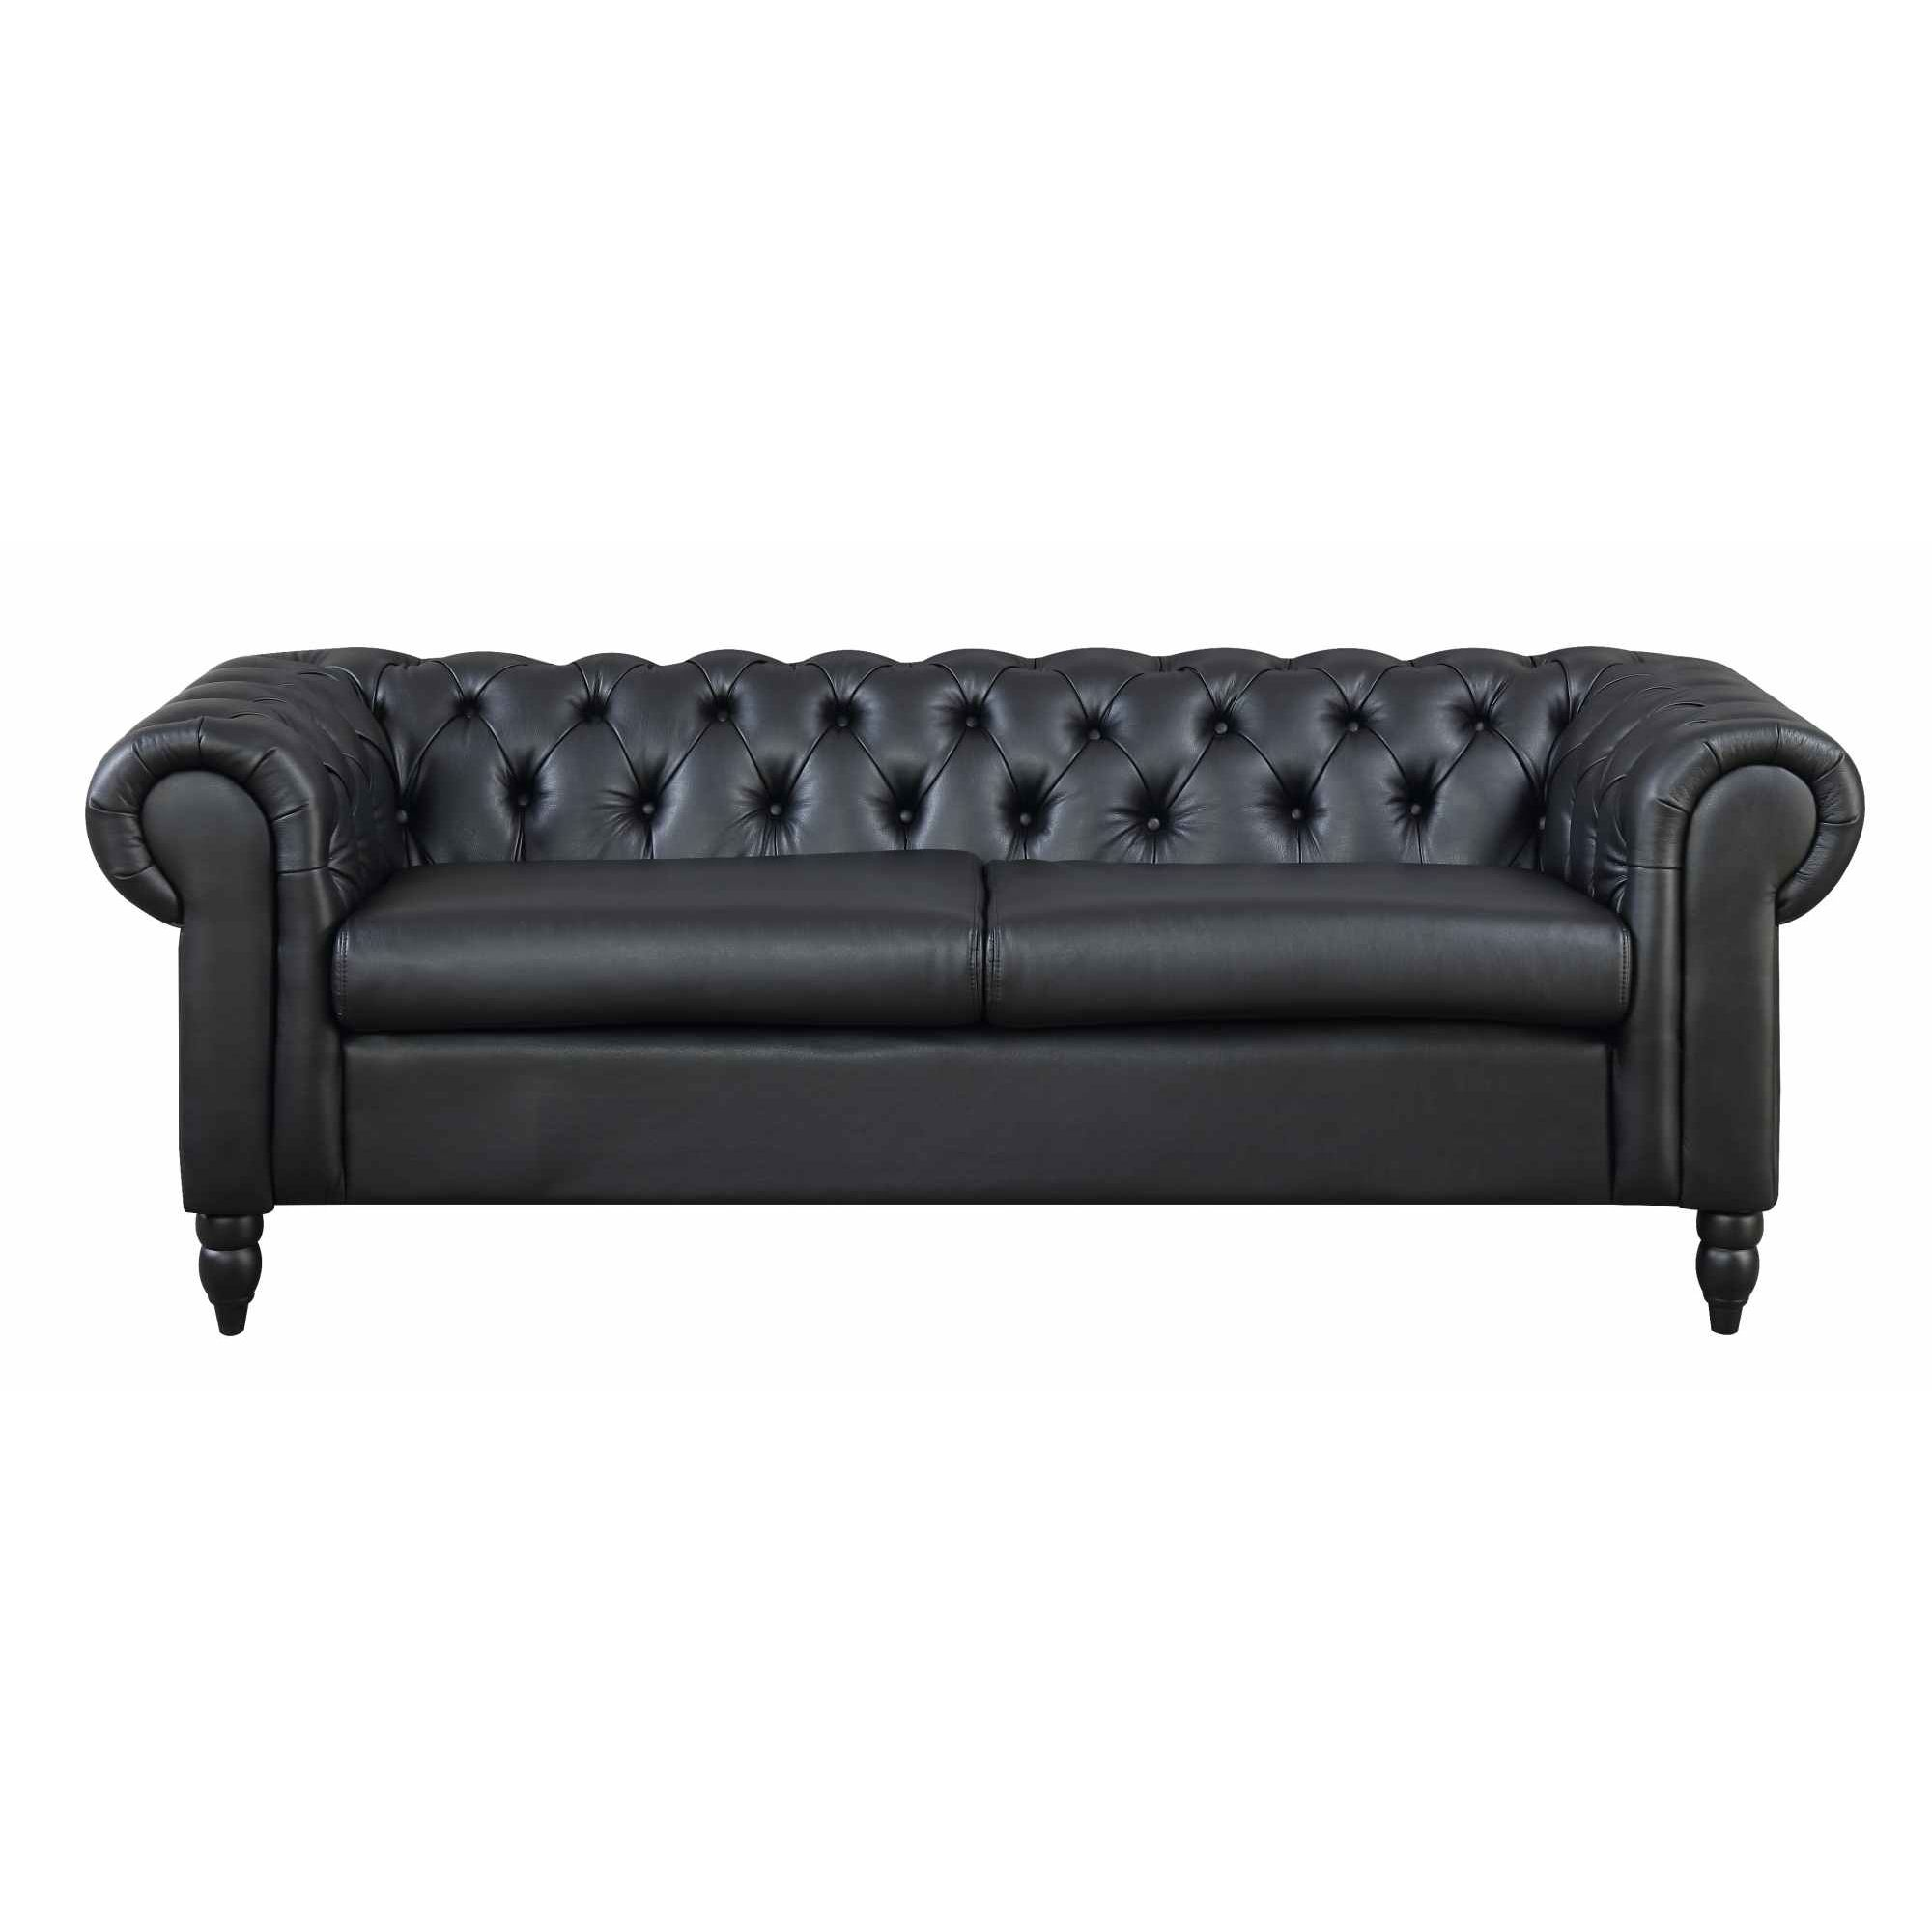 Deco in paris canape chesterfield 3 places noir winston chester winston 3p - Canape chesterfield noir ...